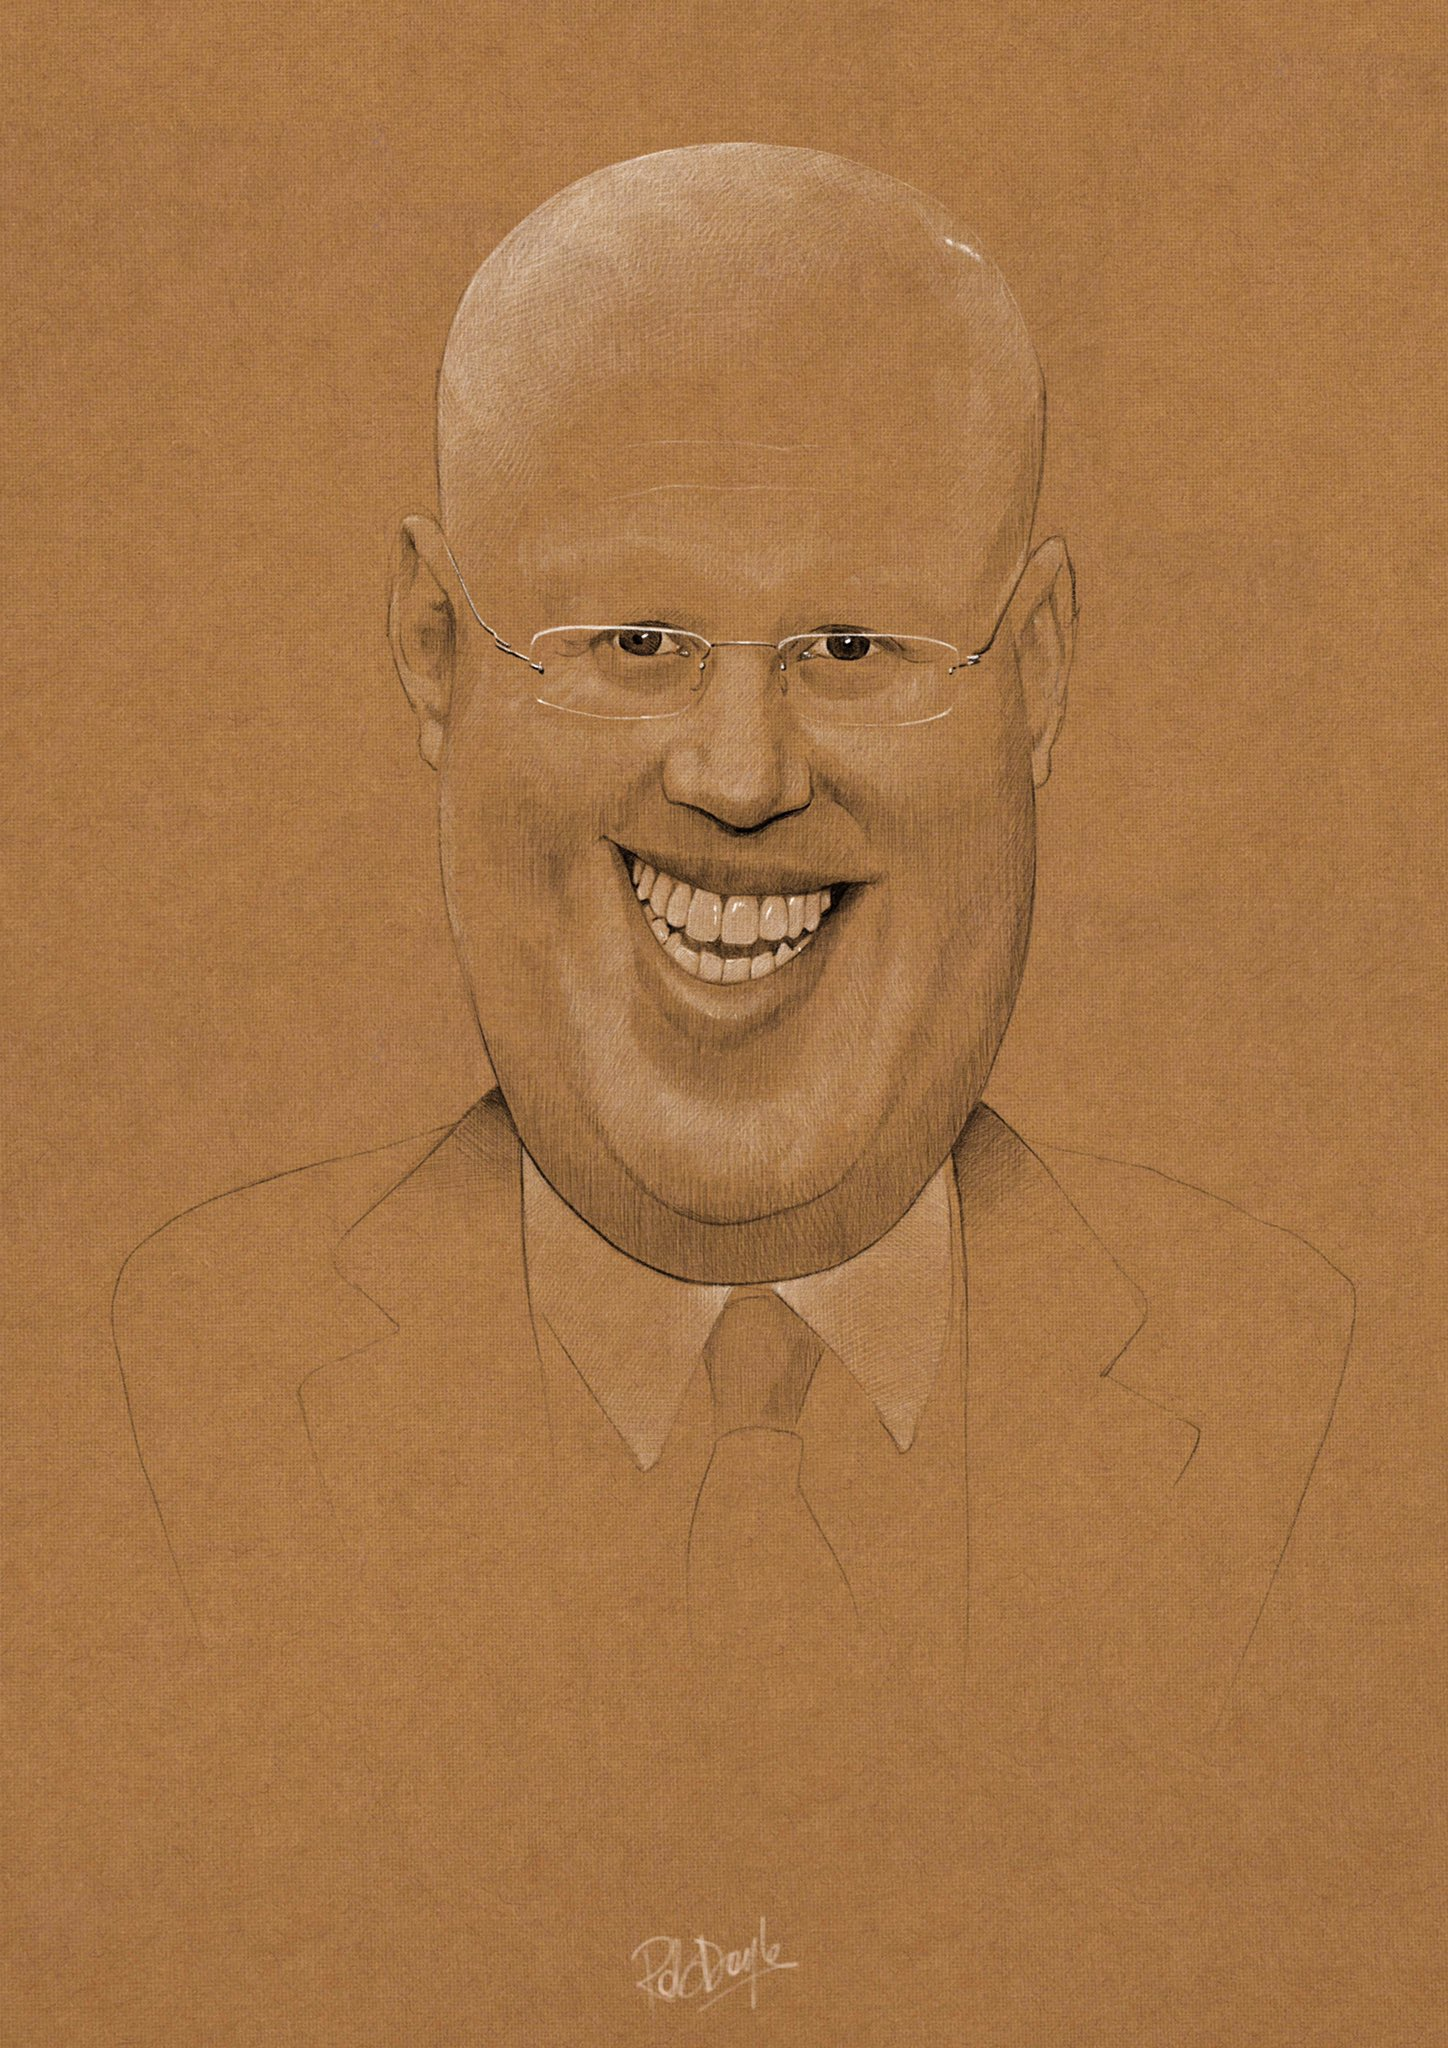 RT @robdoylecouk: I had a sudden urge to spend some more time tonight staring at @RealMattLucas's lovely, happy face. https://t.co/VvNvzCVw…